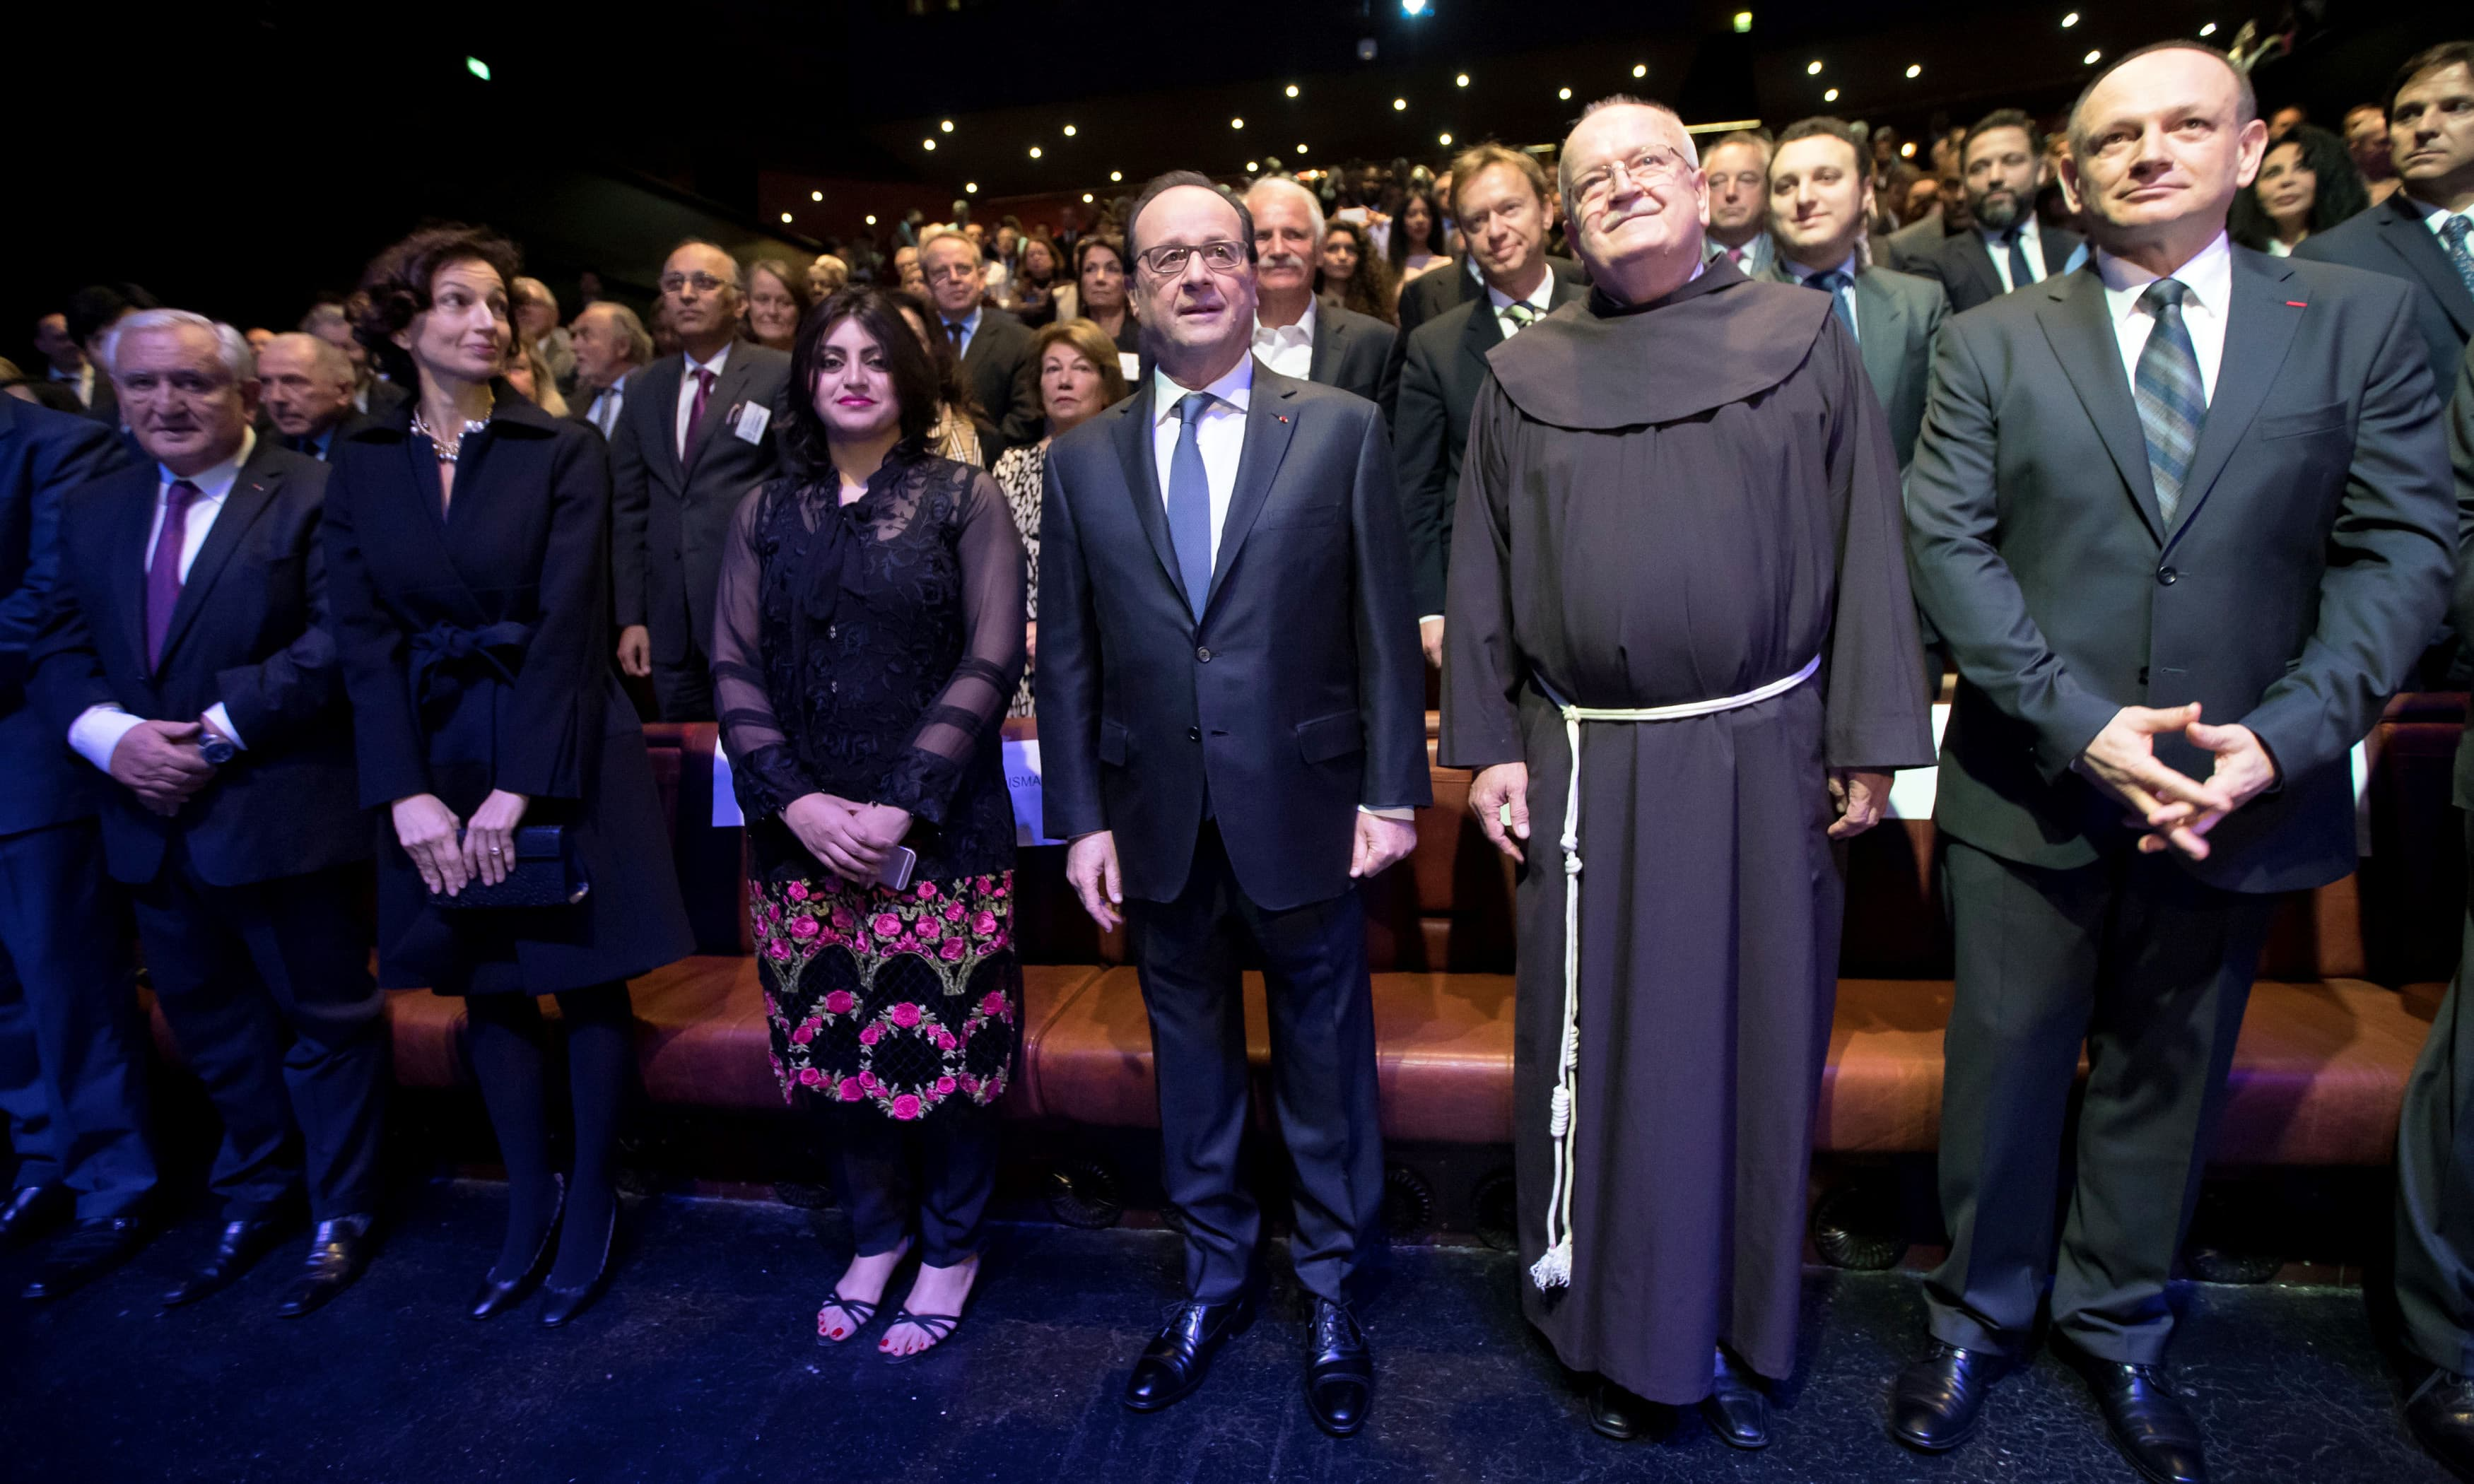 French President Francois Hollande stands next to Gulalai Ismail, winner of the Prize for Conflict Prevention. —Rreuters